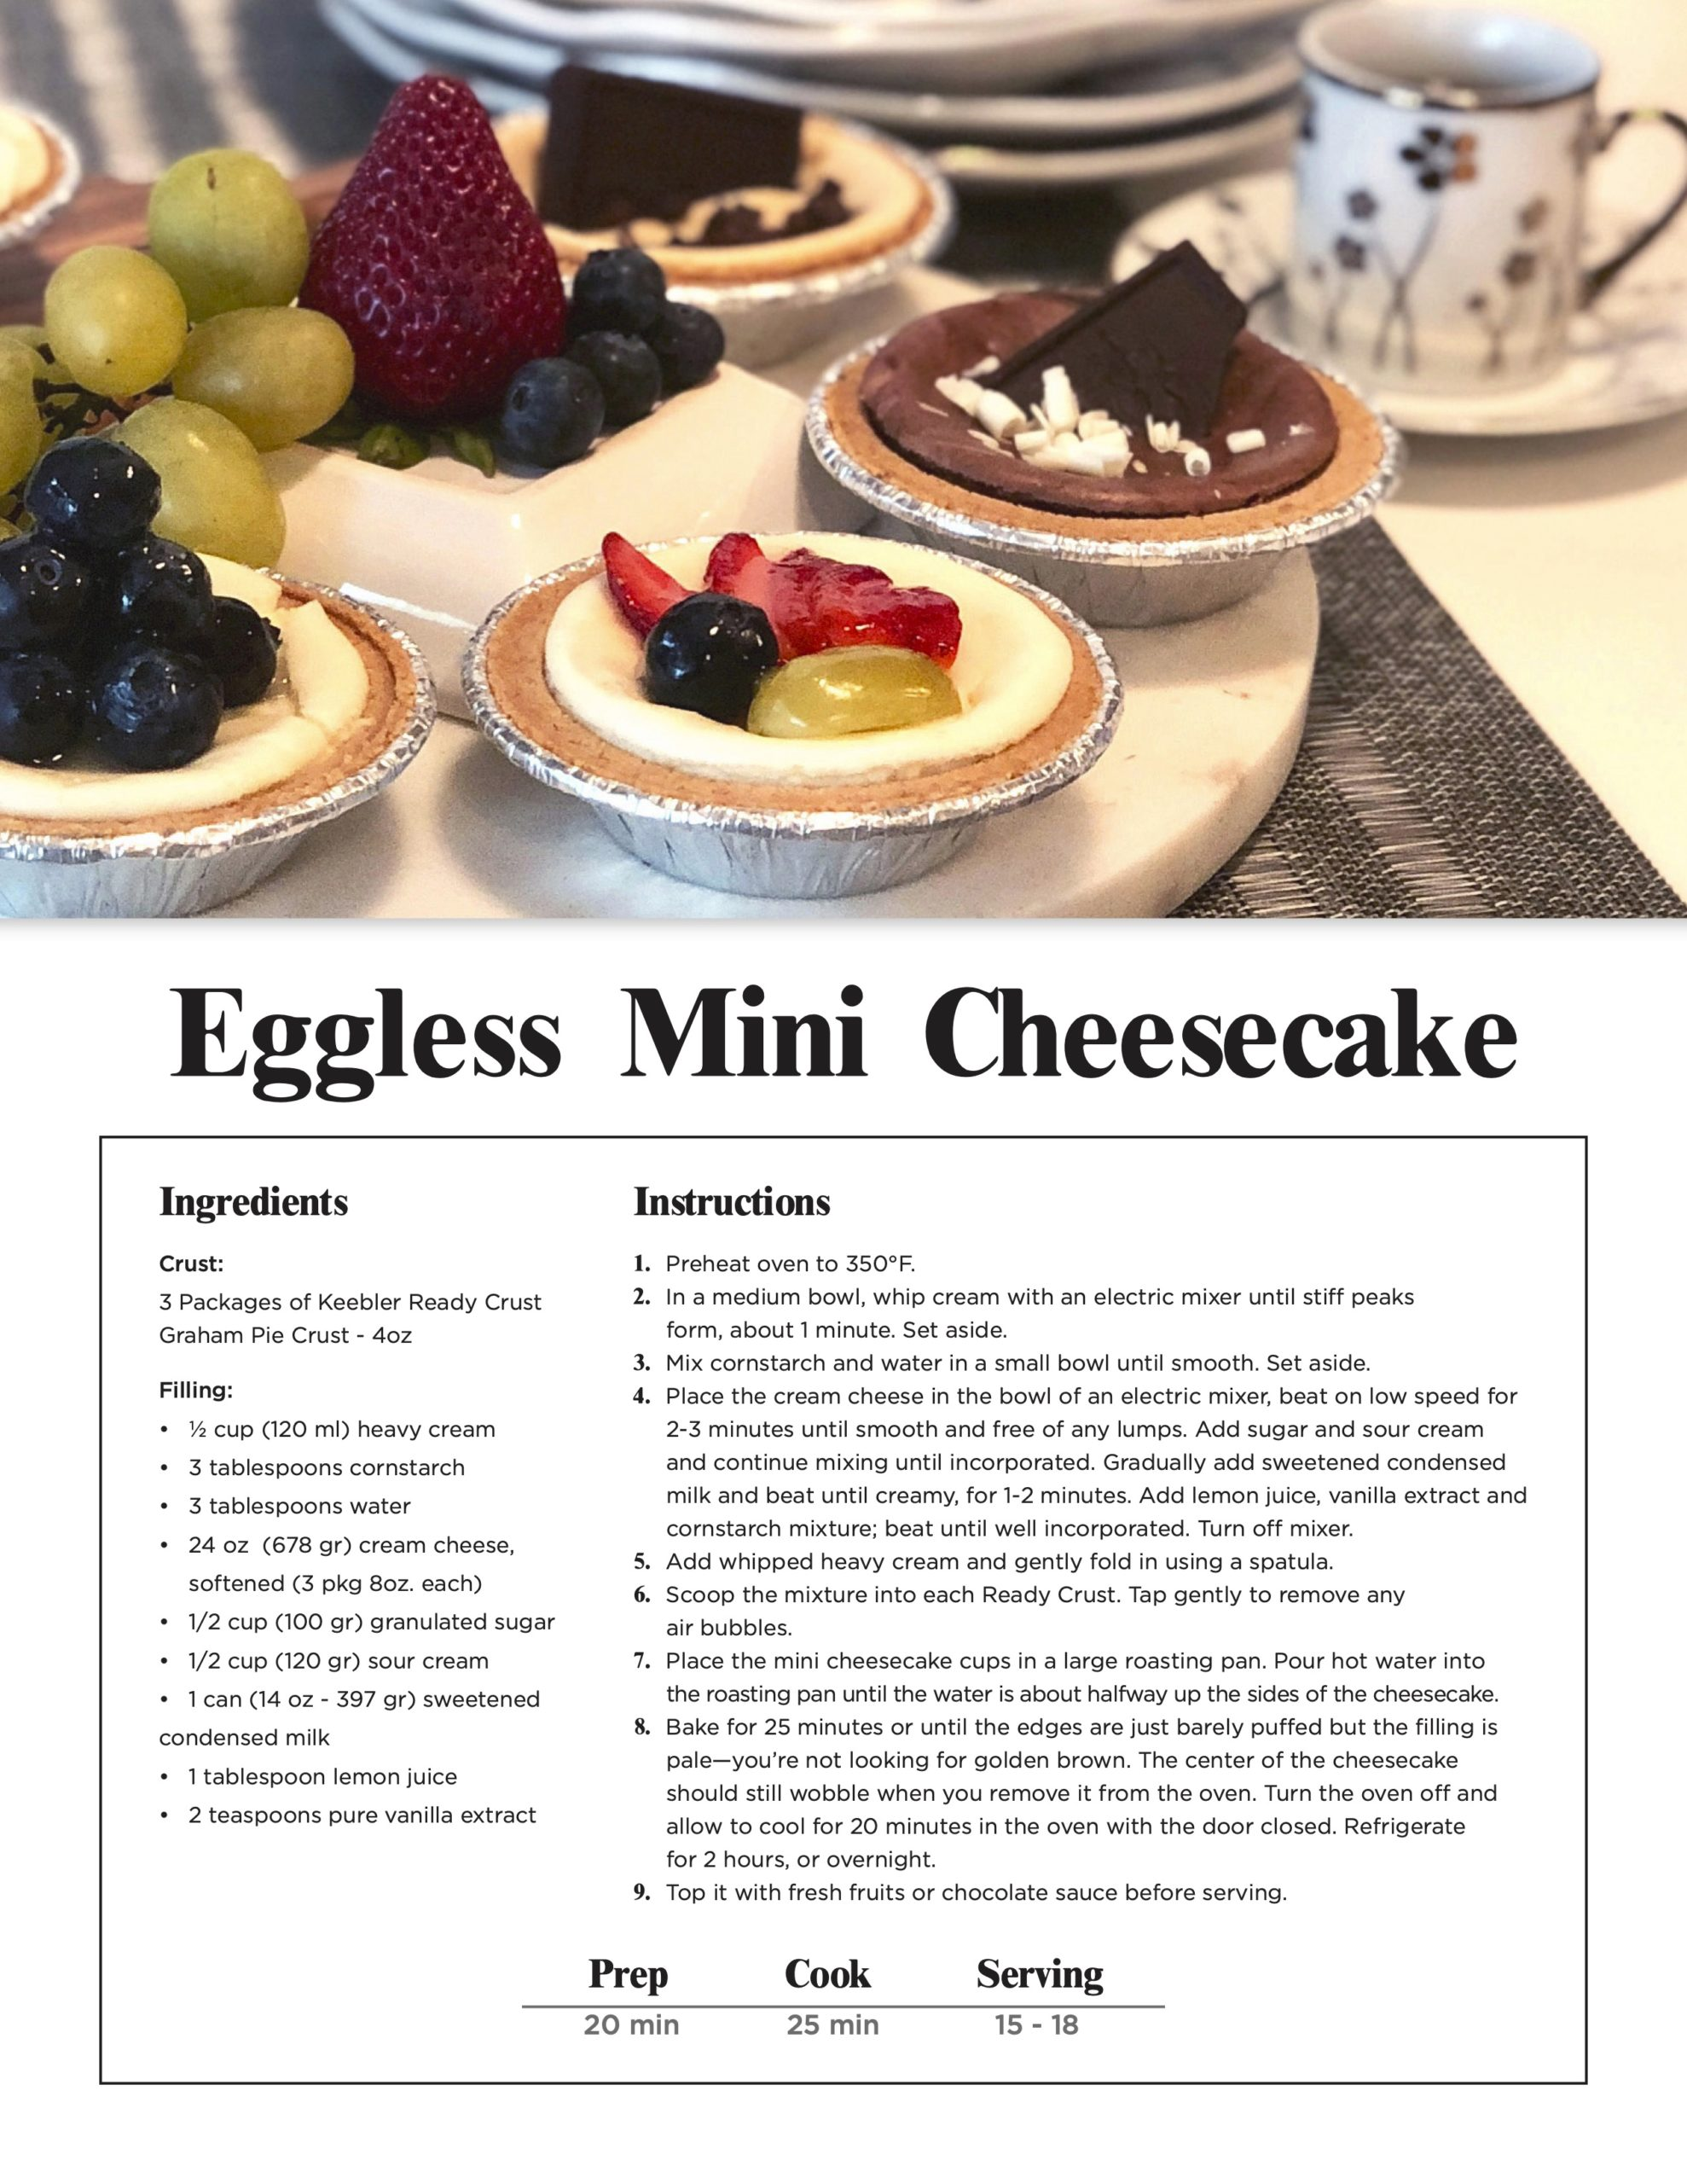 Eggless Mini Cheesecake